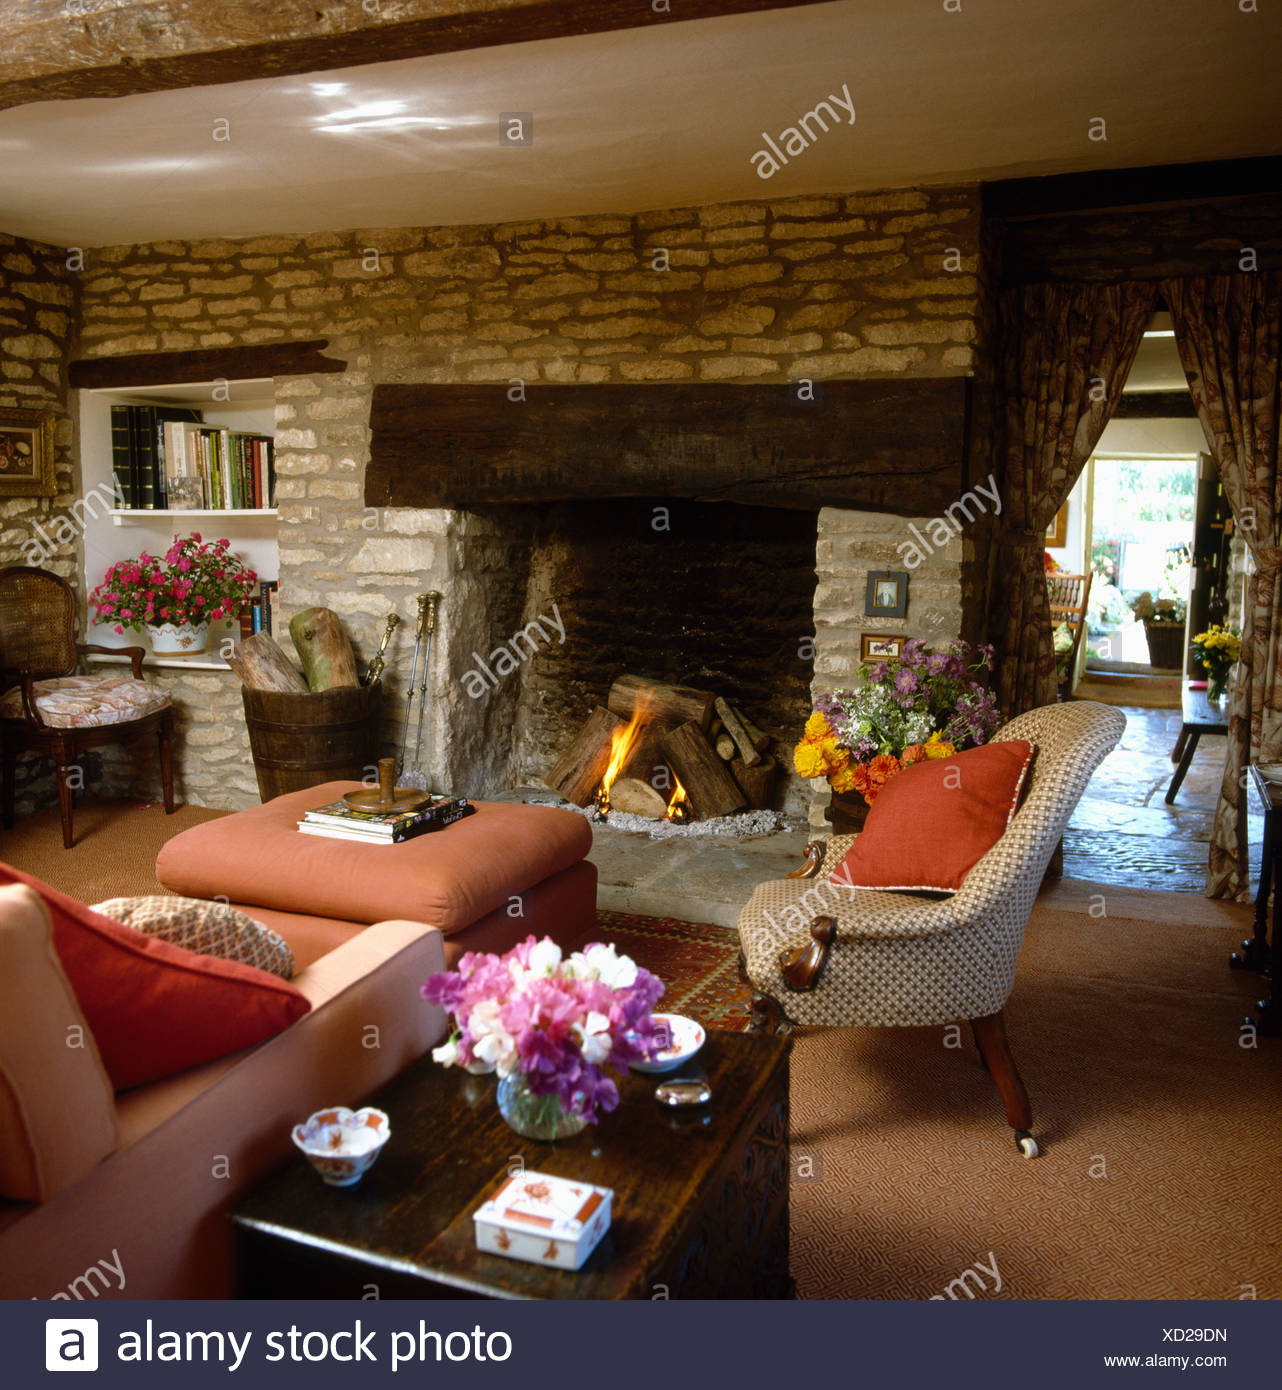 Inglenook fireplace in country cottage livingroom with stone wall and comfortable furniture - Stock Image